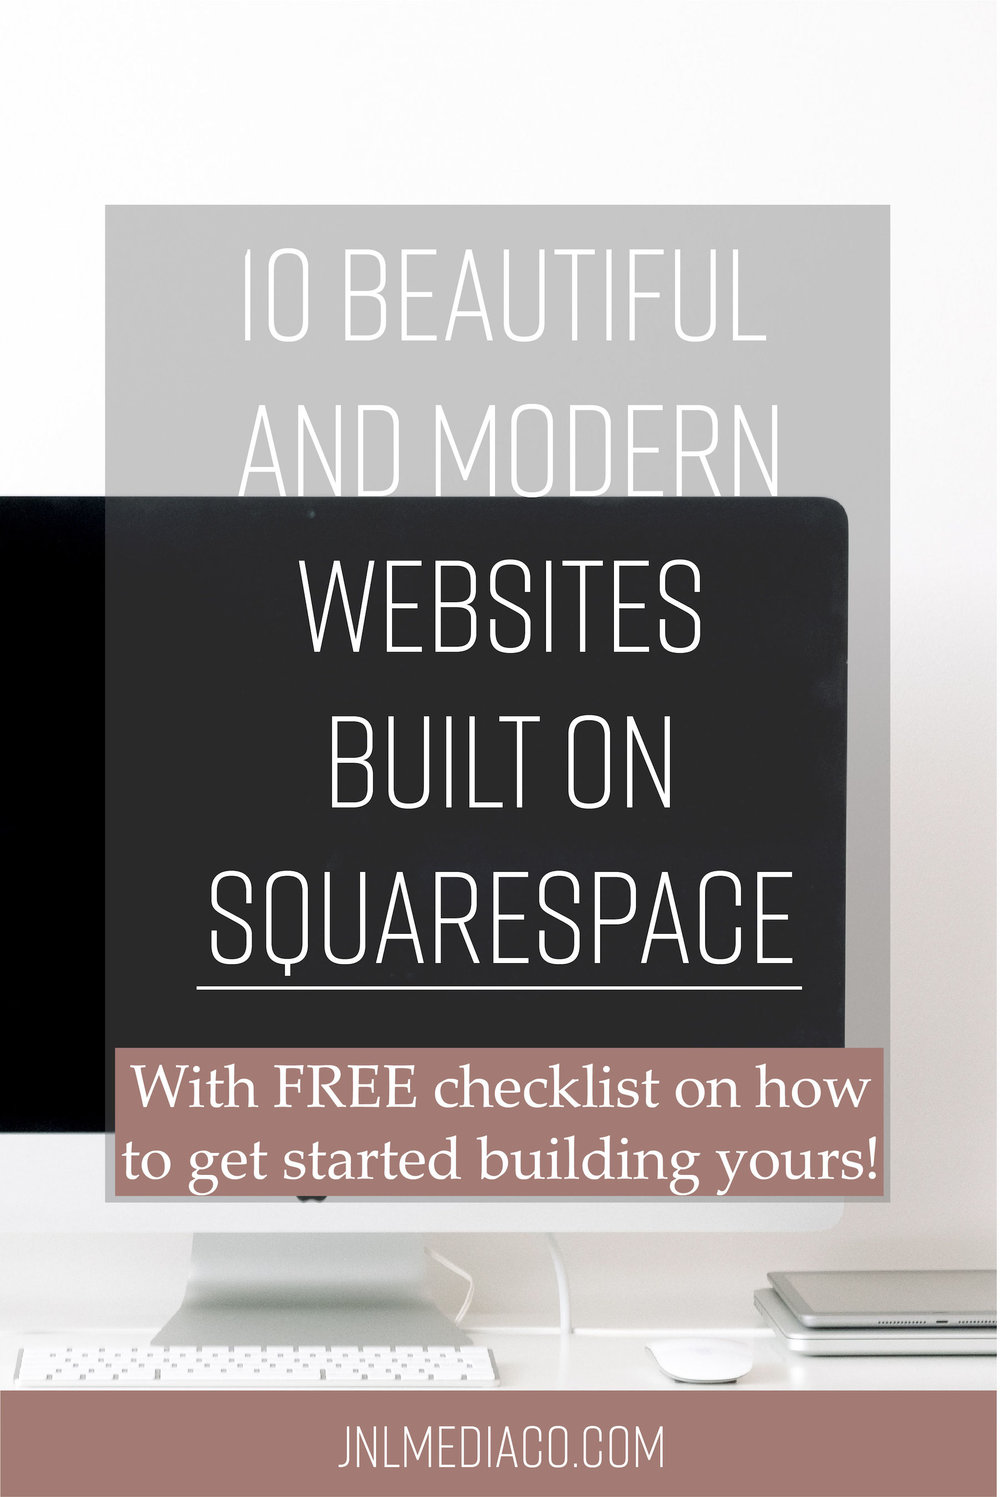 10 Beautiful And Modern Websites Built on Squarespace